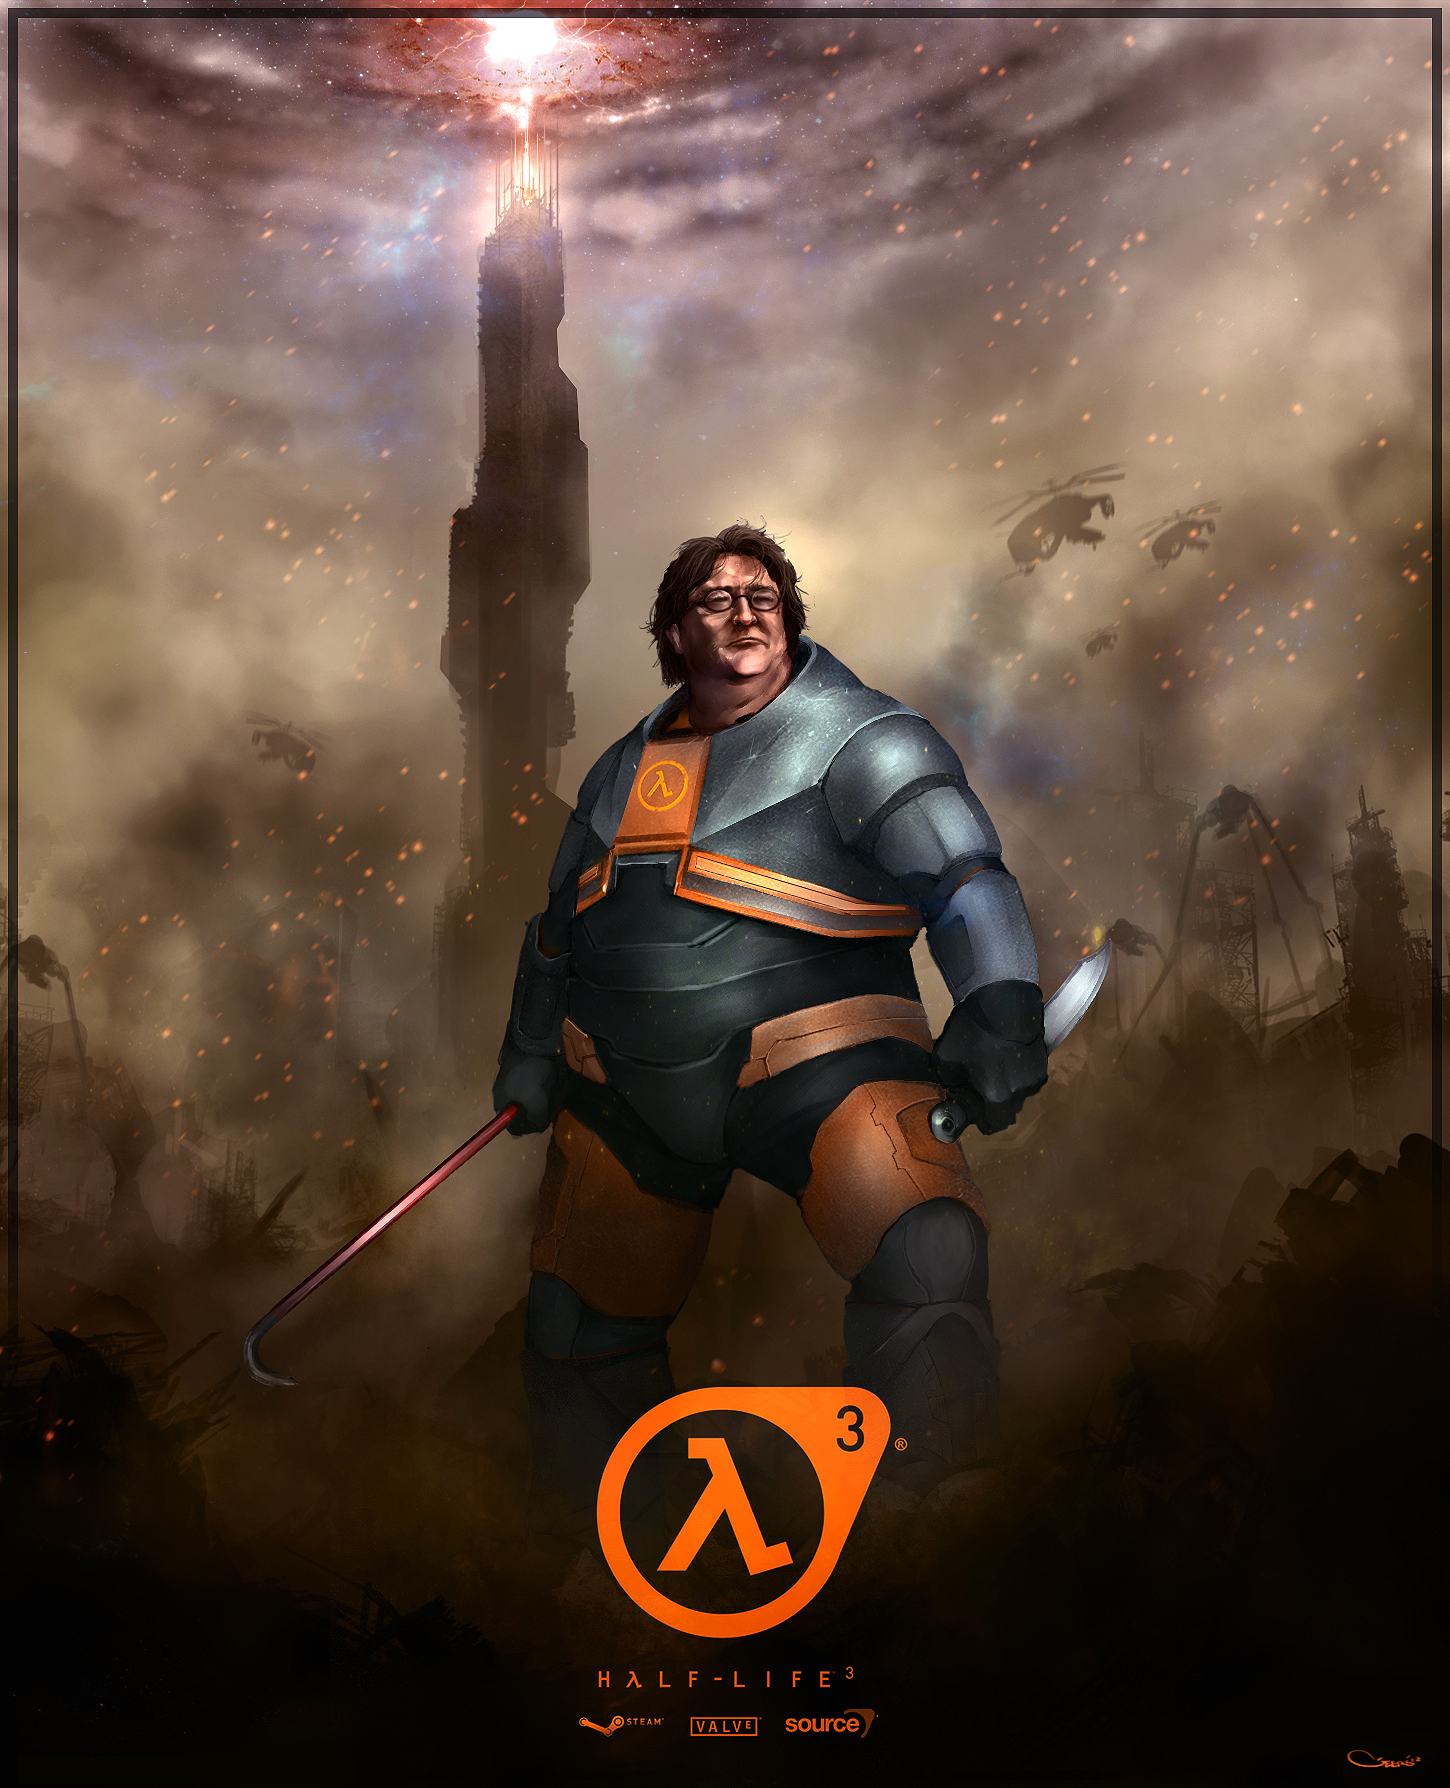 View Gabe Newell Half Life 3 By Dar 3mib Gabe Newell